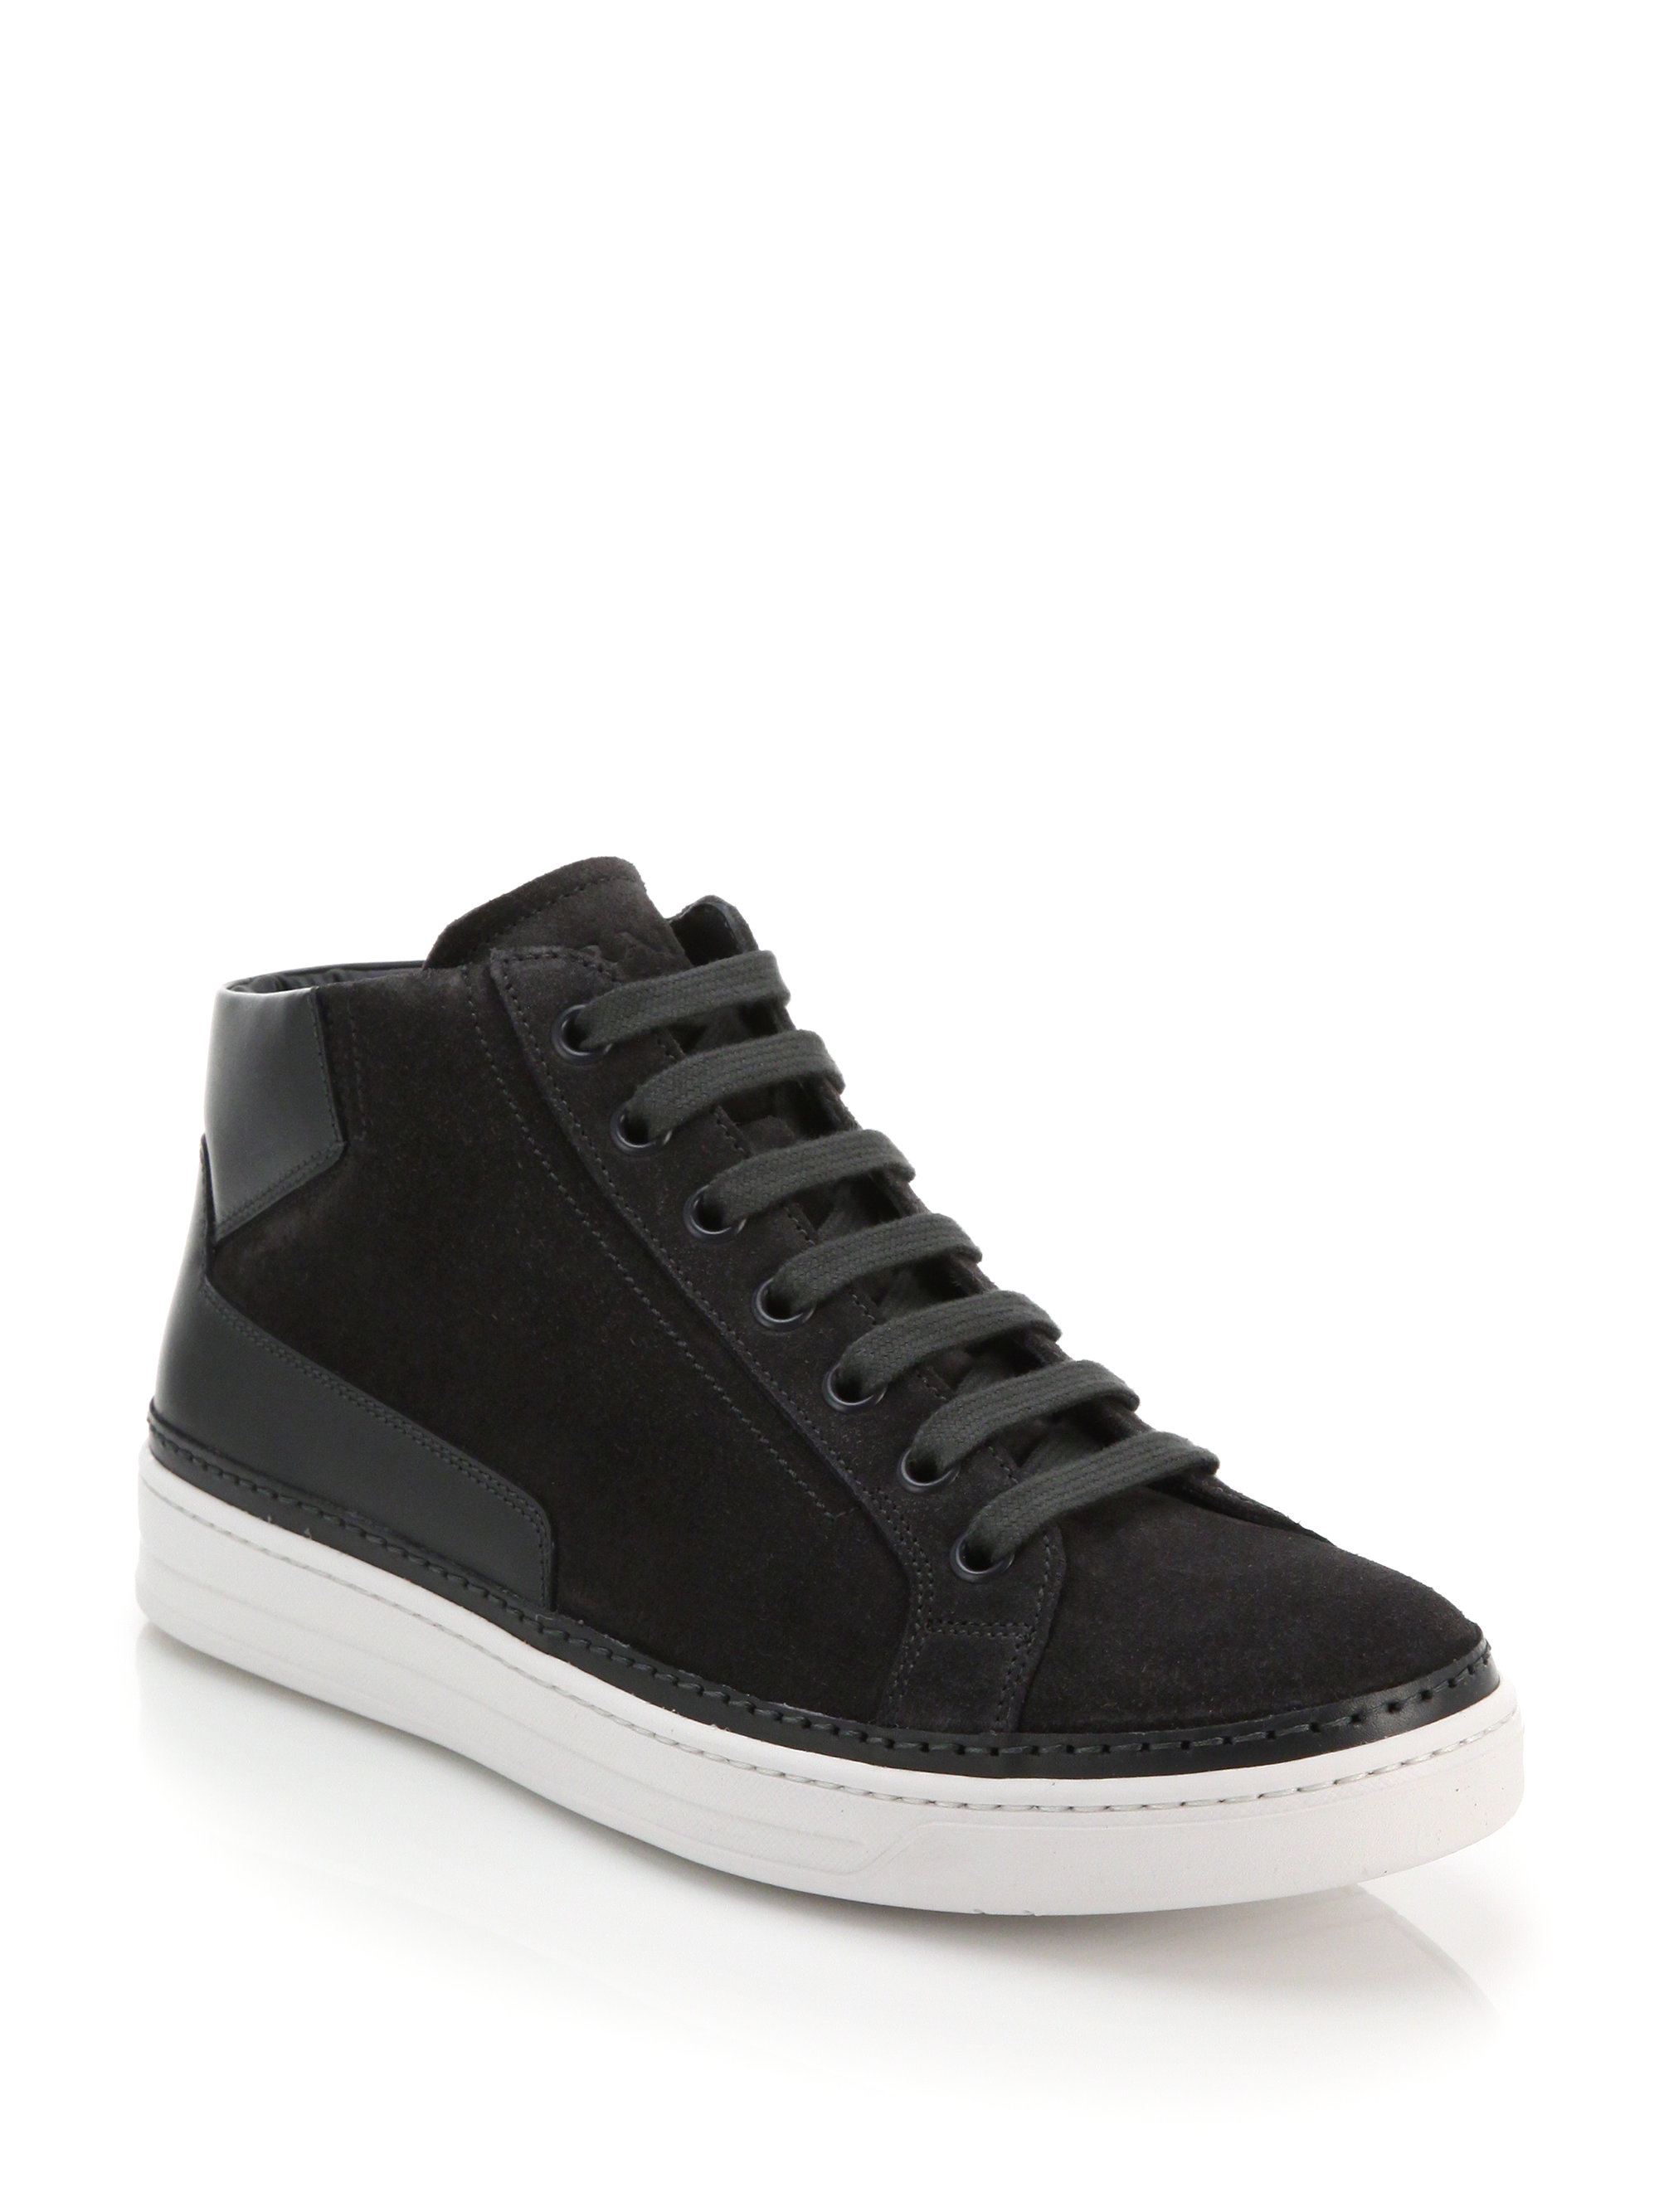 Rubber Rings For Men >> Prada Suede & Leather Mid-top Sneakers in Gray for Men   Lyst